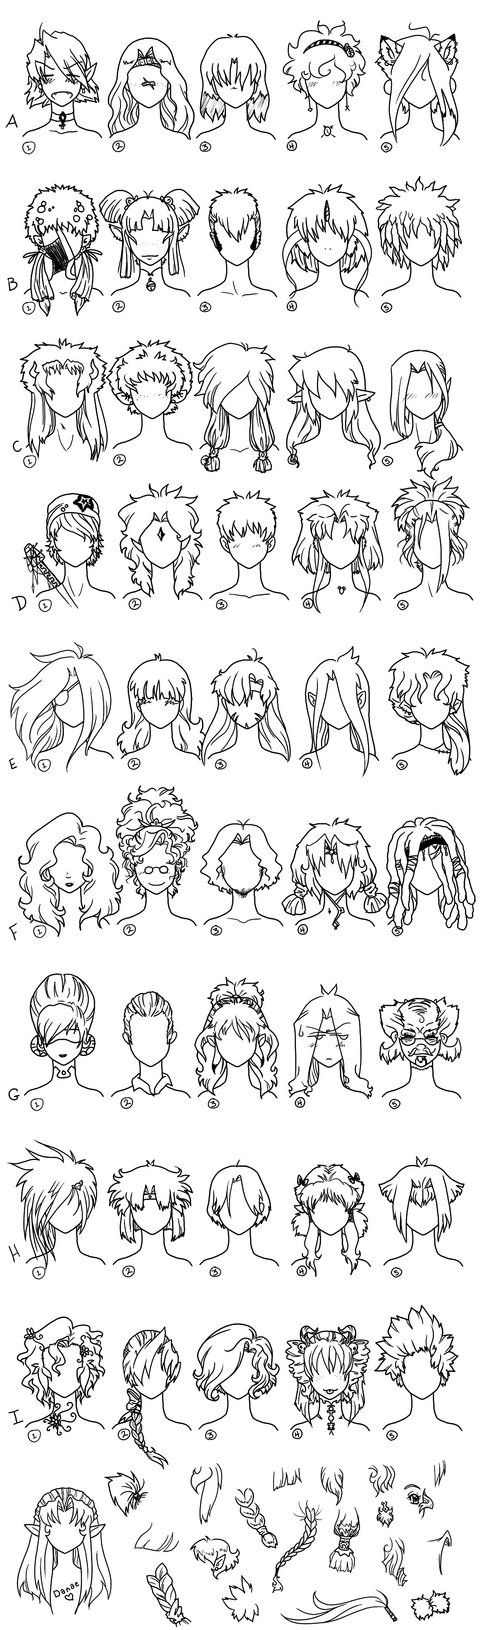 Hair Reference Page 1 by ~Frenehld on deviantART